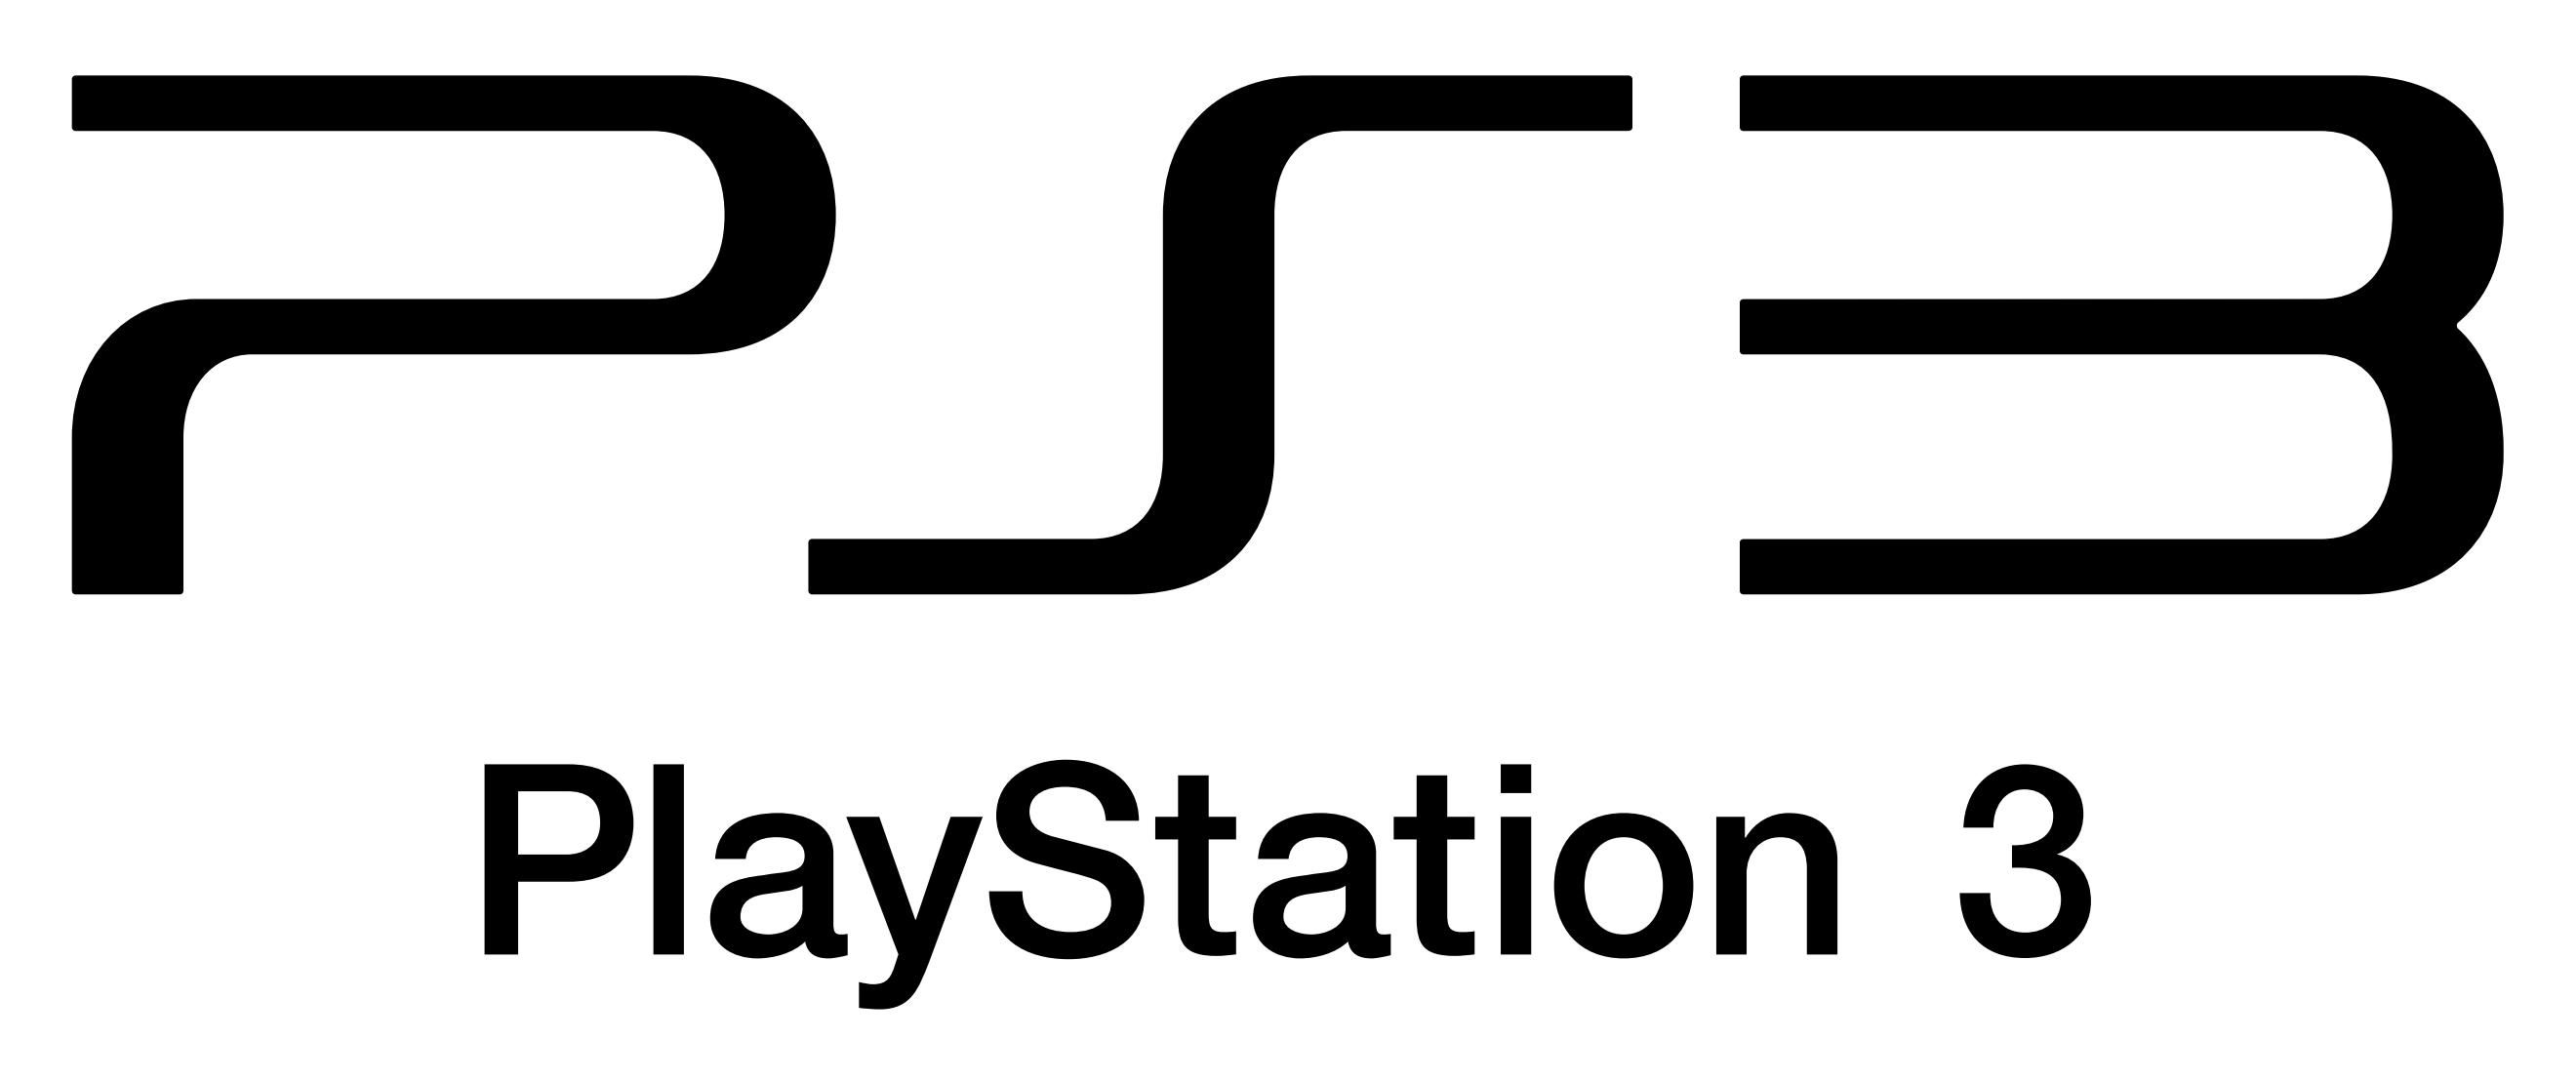 PS3 – PlayStation 3 Logo Vector [EPS File] | Technology